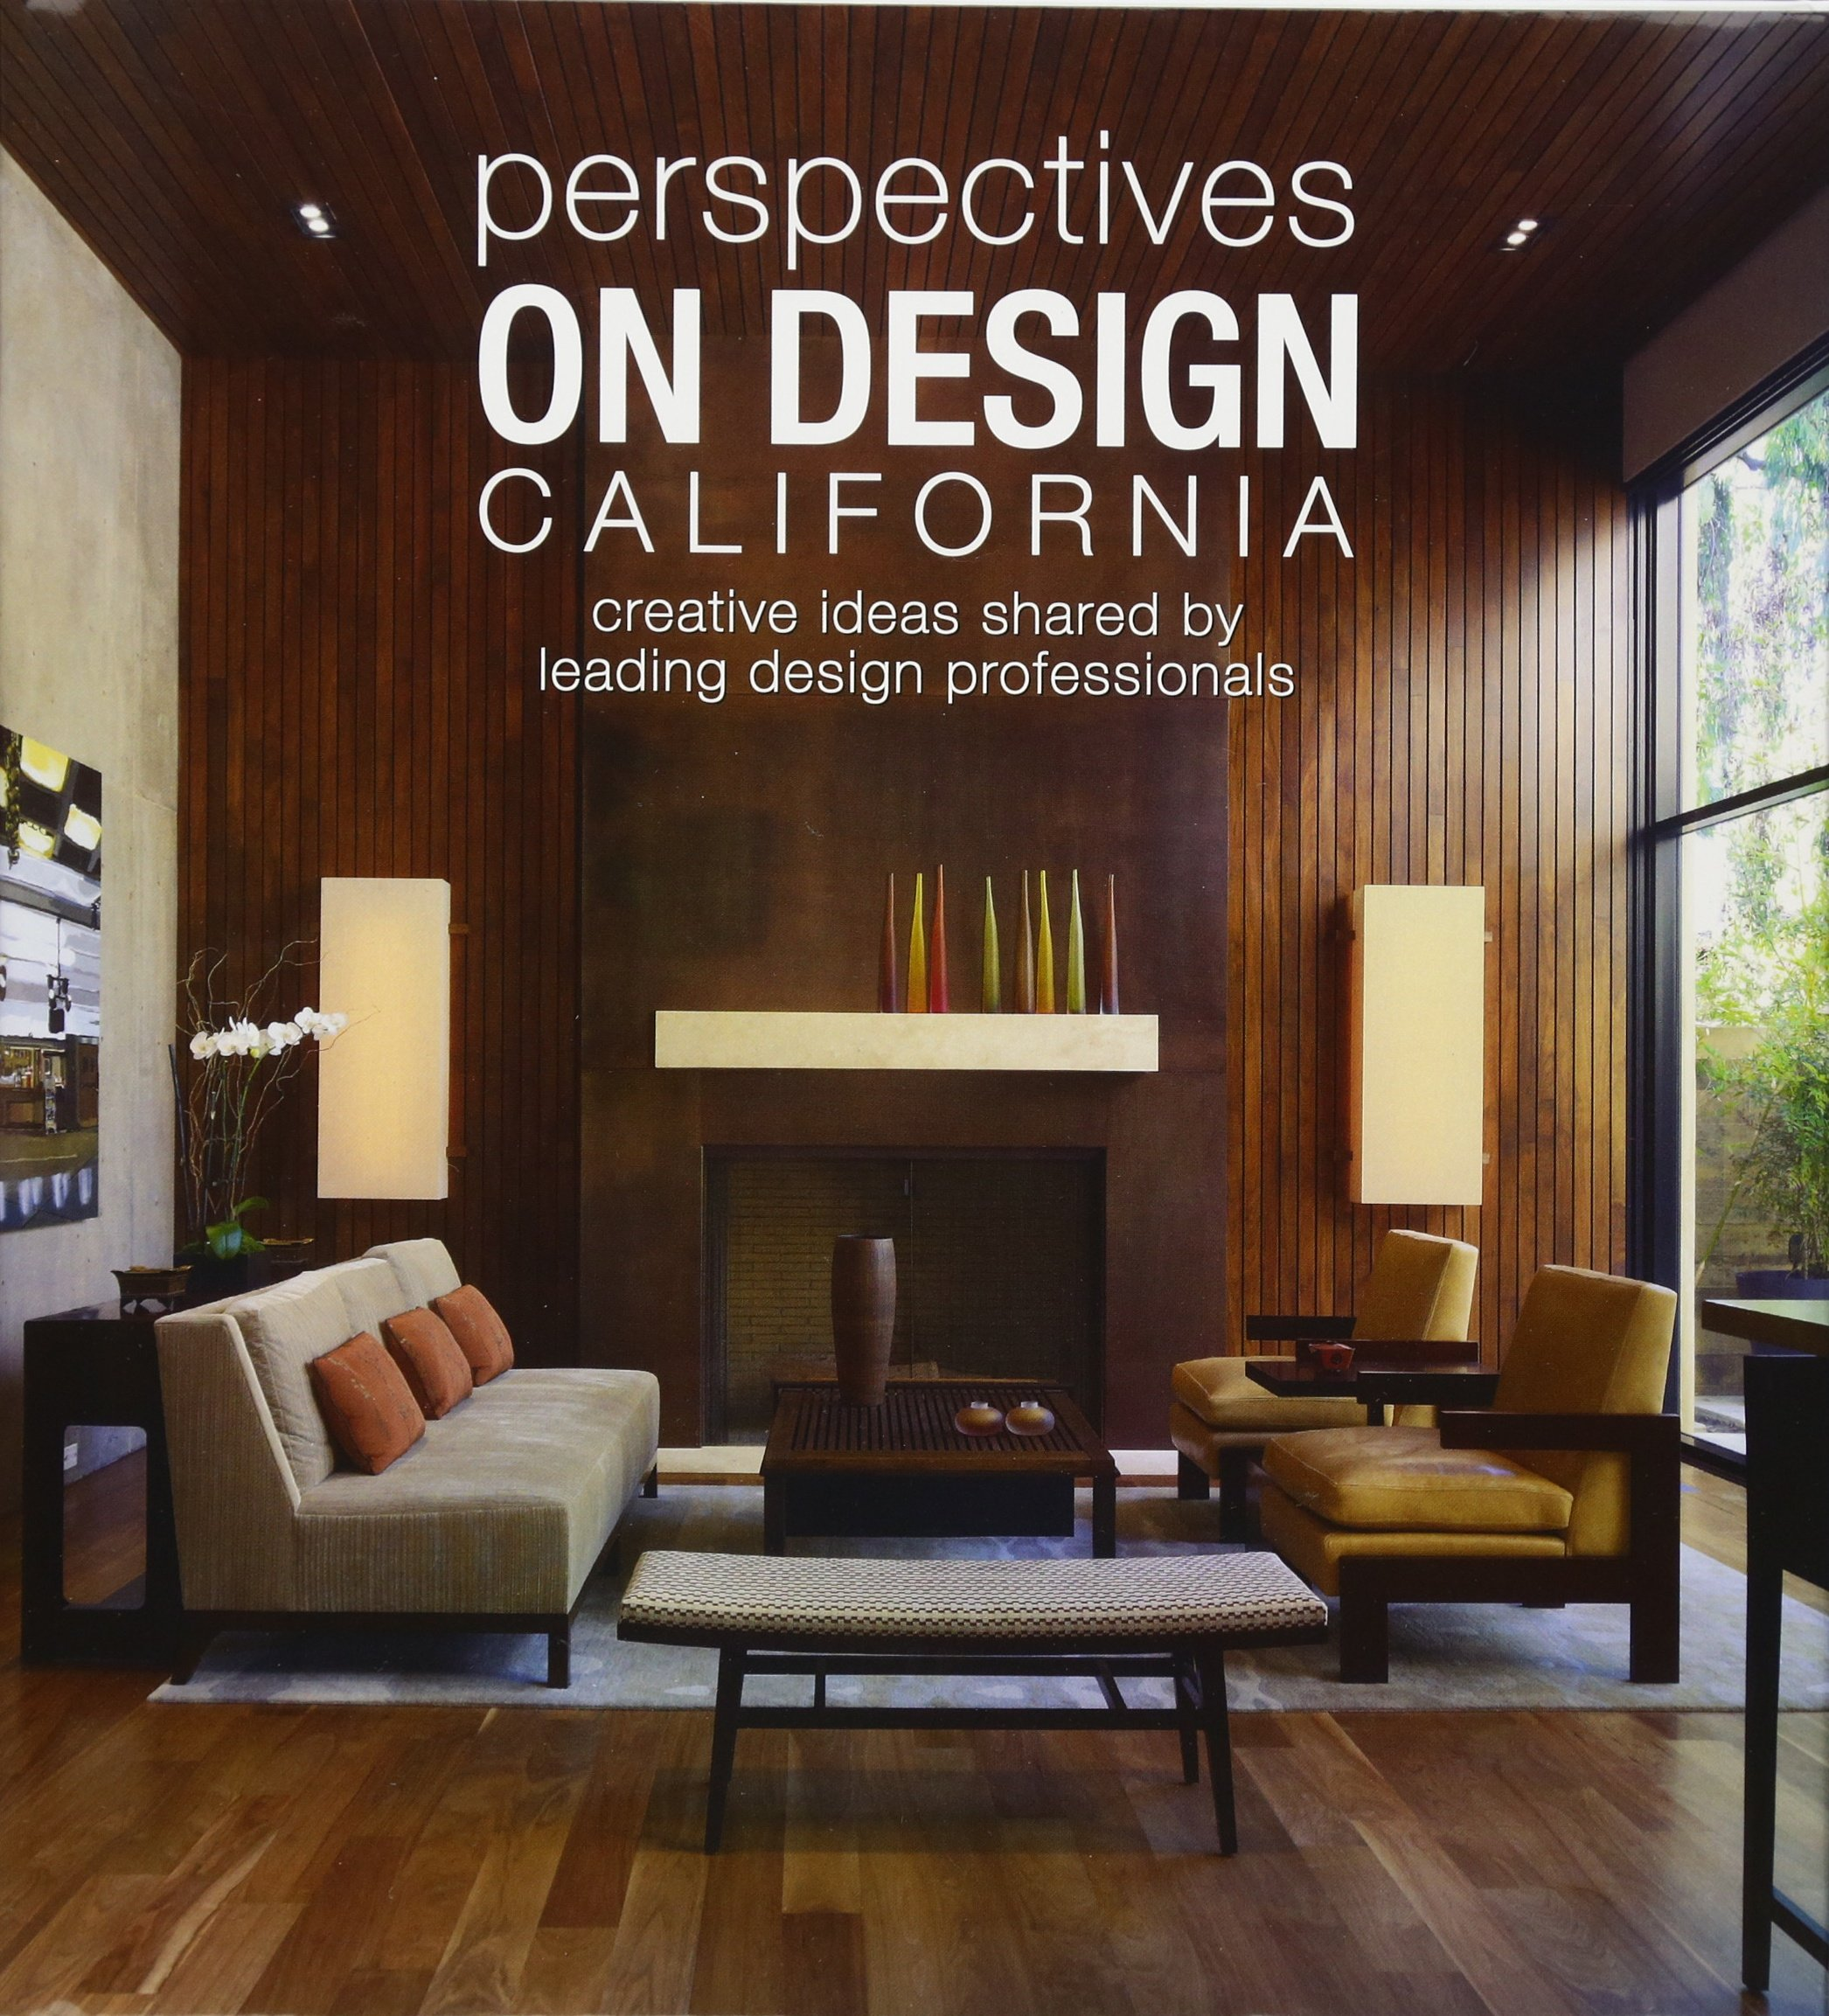 Perspectives on Design California  Creative Ideas Shared by Leading Design Professionals